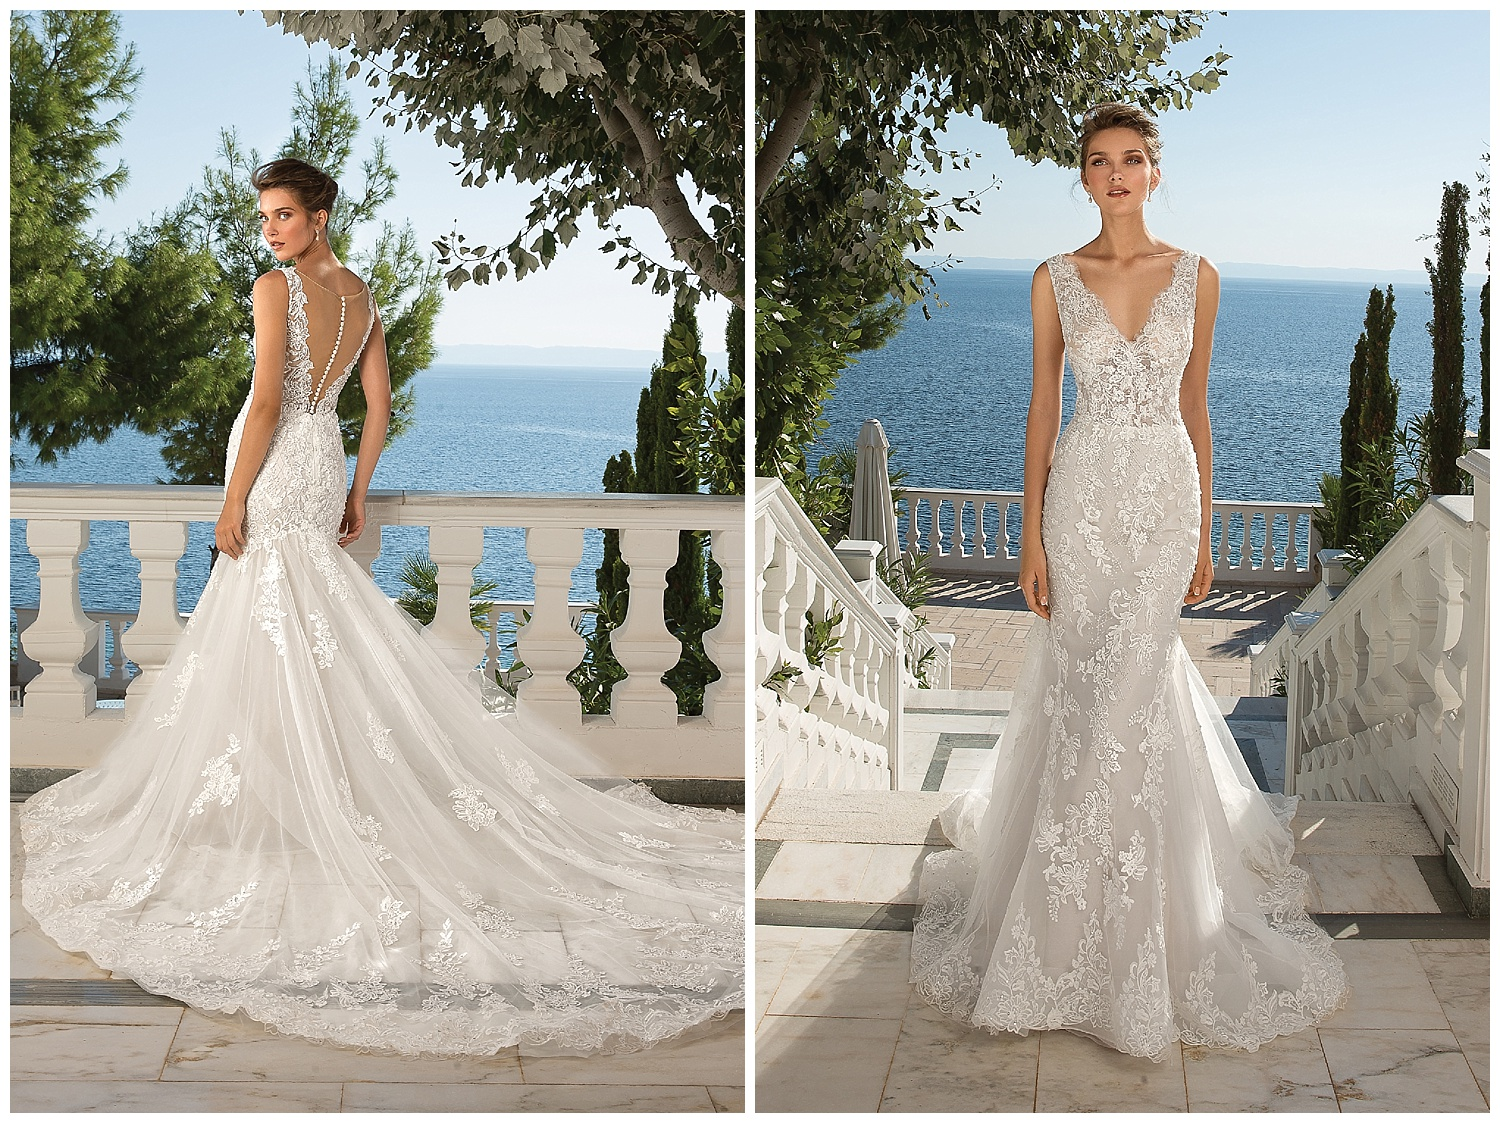 justin-alexander-fitted-lace-dress-with-train-epiphany-boutique-carmel-california.jpg